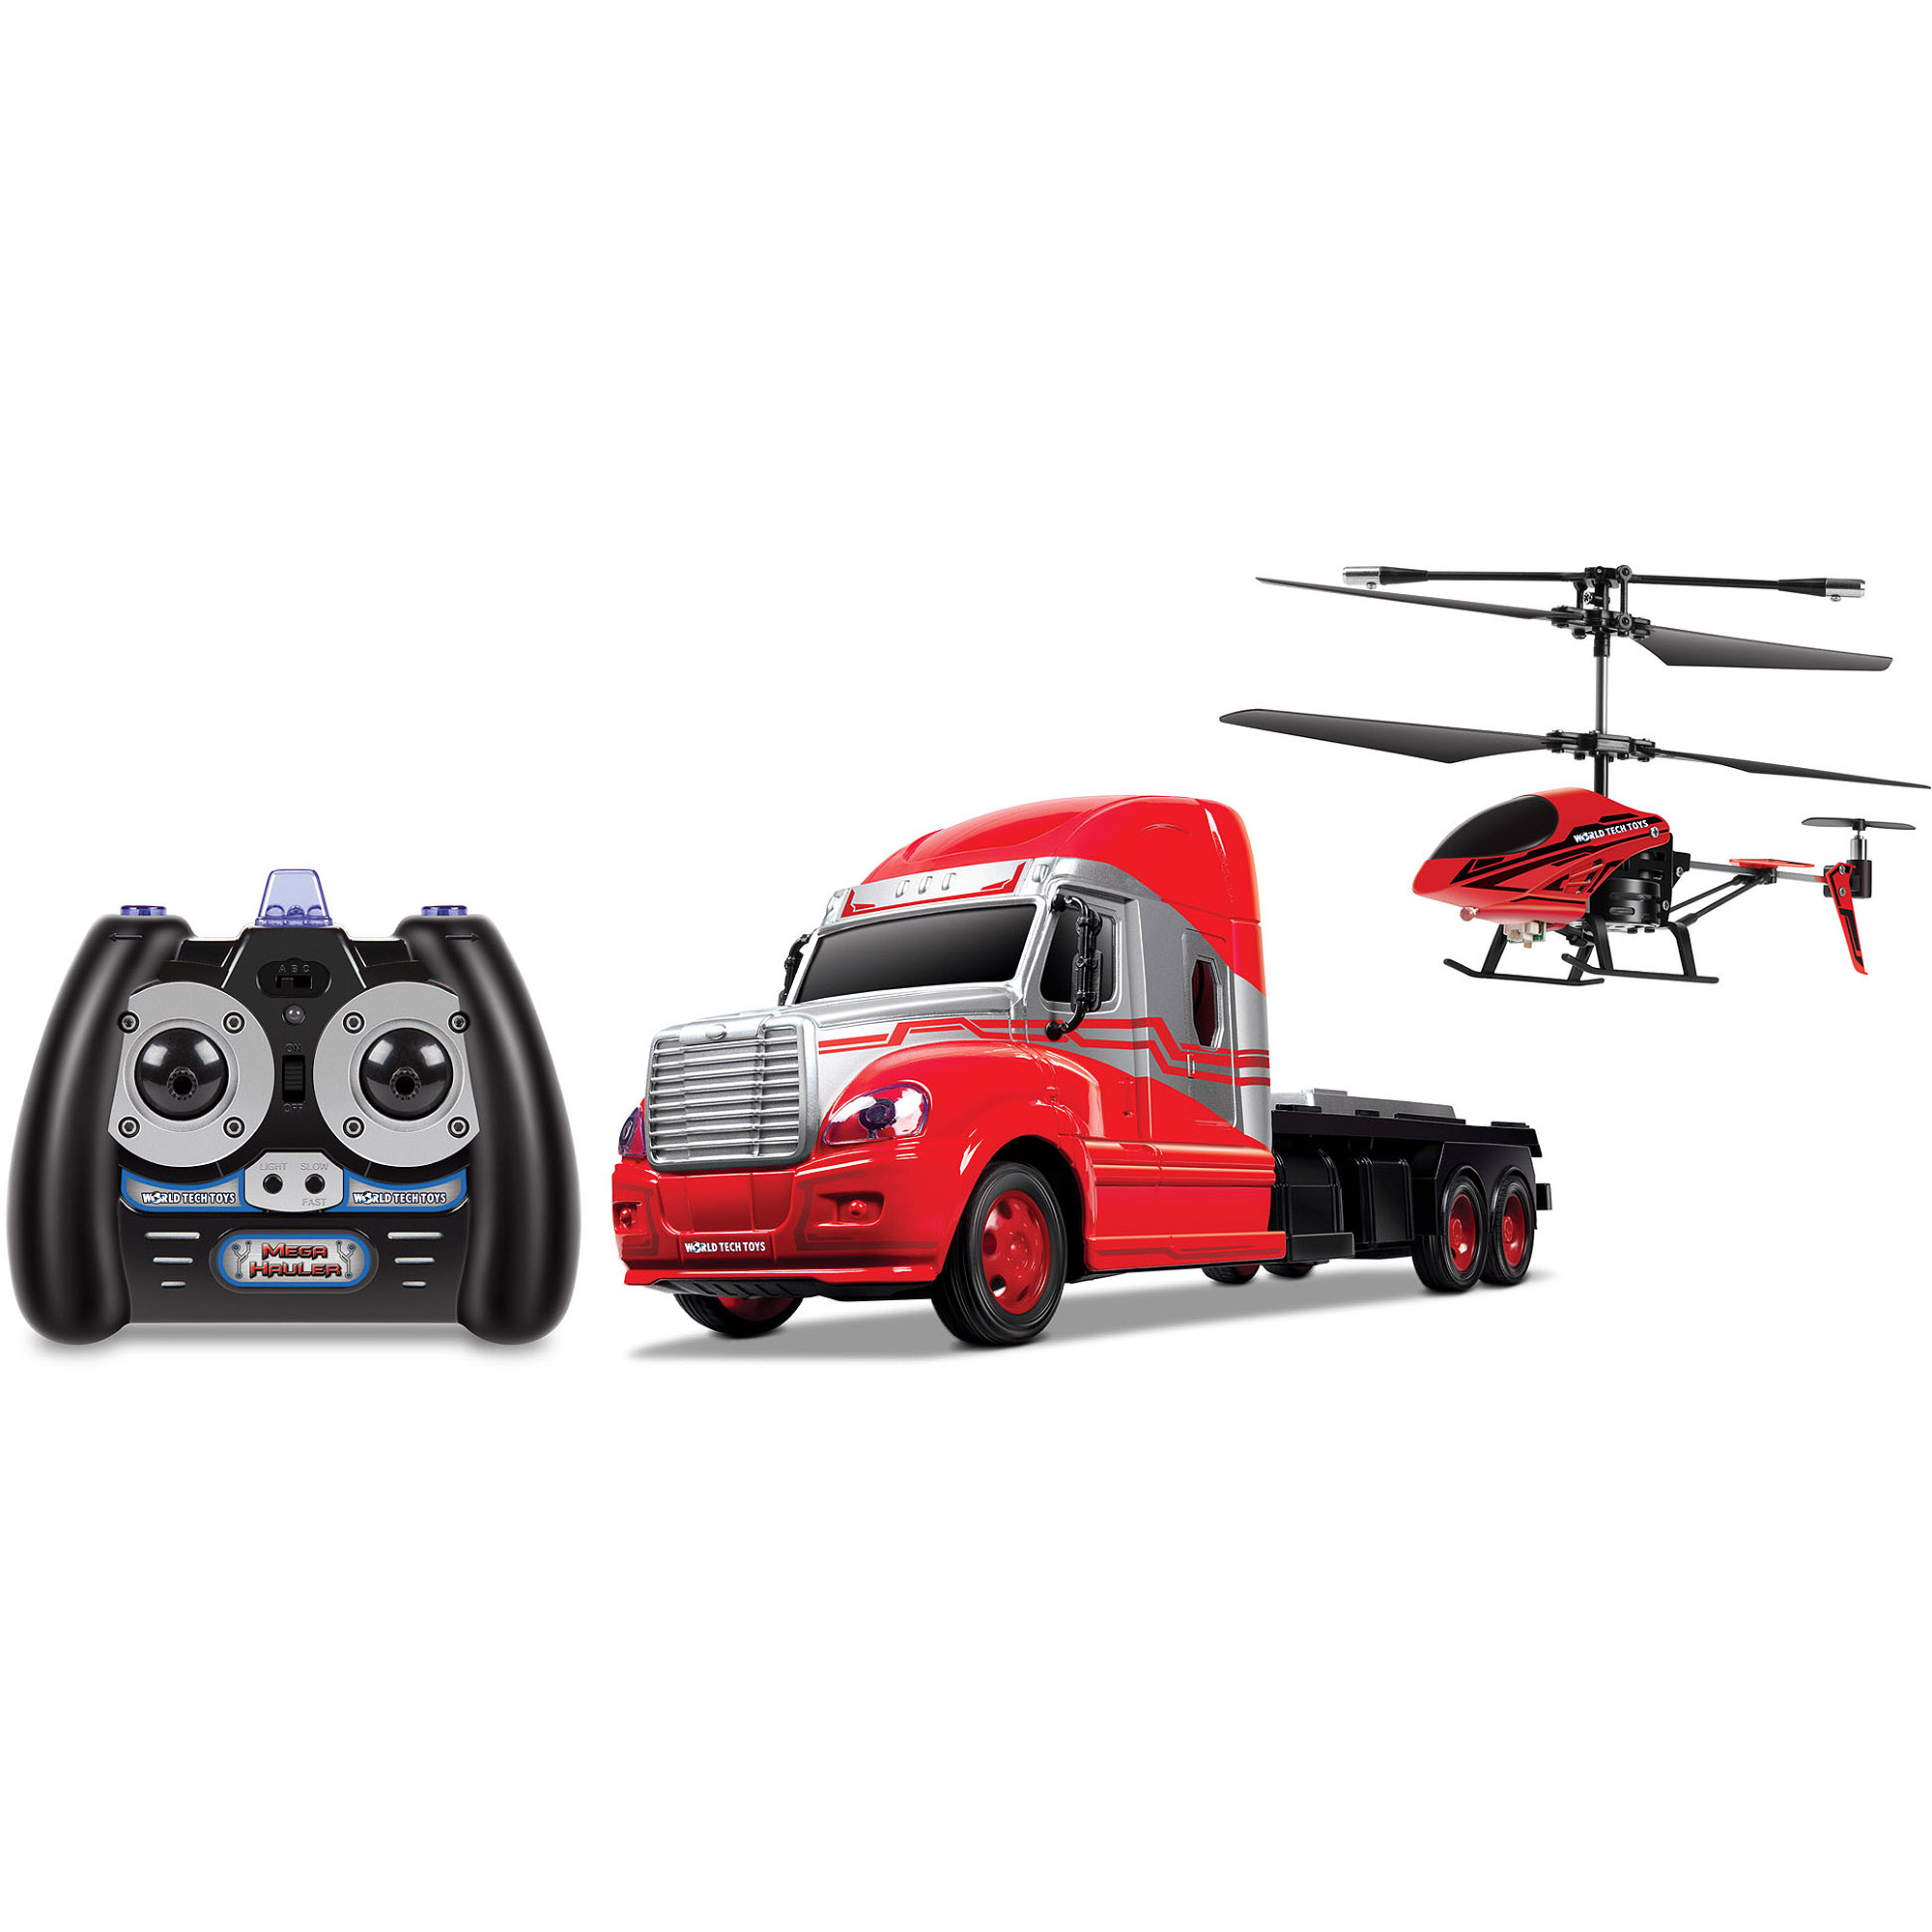 World Tech Toys 3 5CH Mega Hauler Helicopter & Truck bo